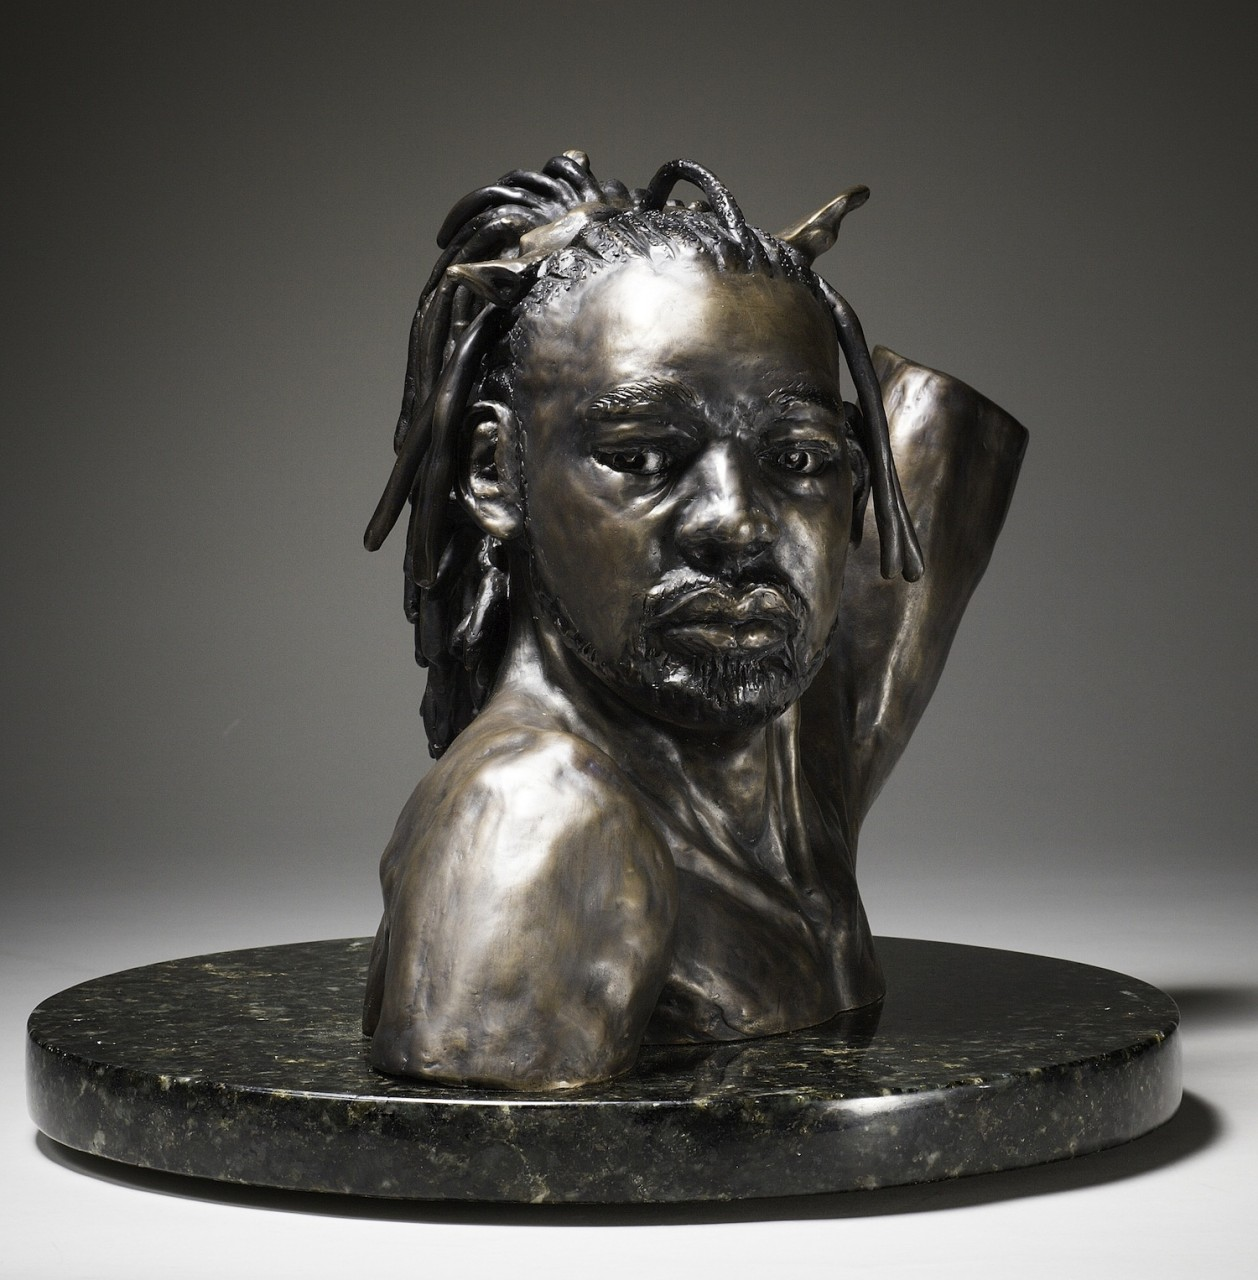 """Danseur Royal"" Cast Bronze - 16"" x 7¼"" x 11¾"""